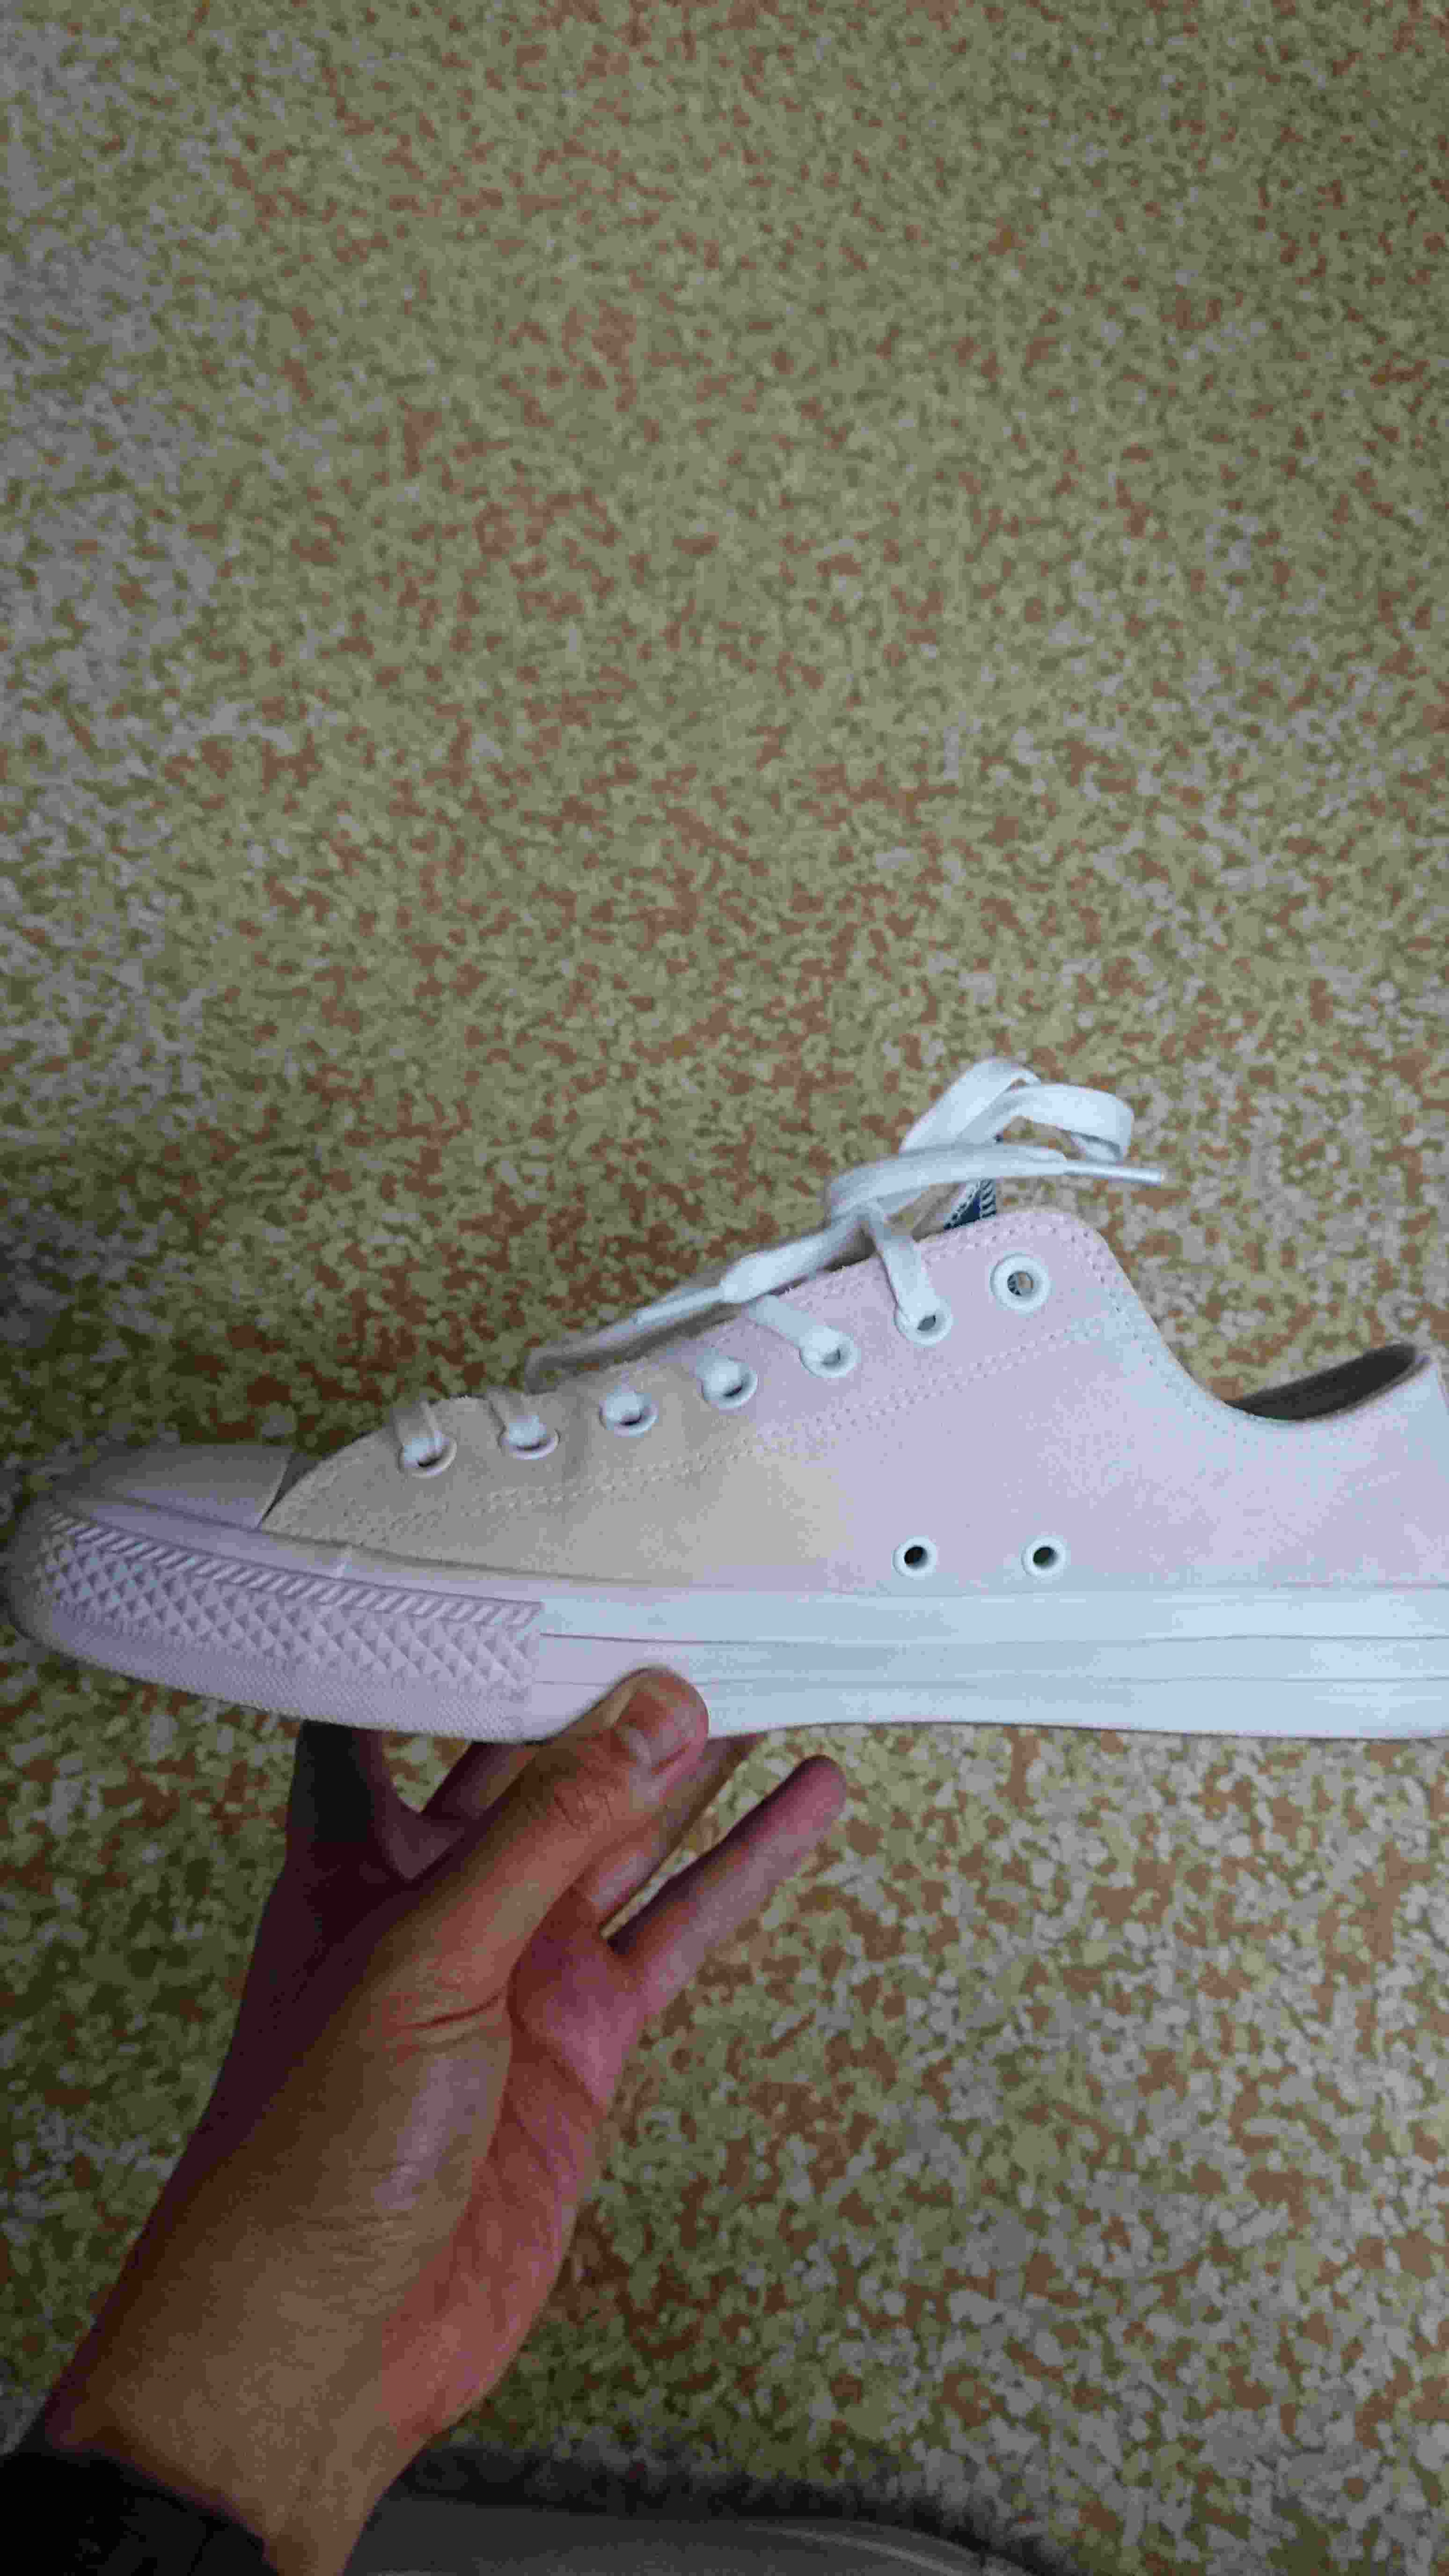 converse ctas white suede  珍しい、オールホワイトのス